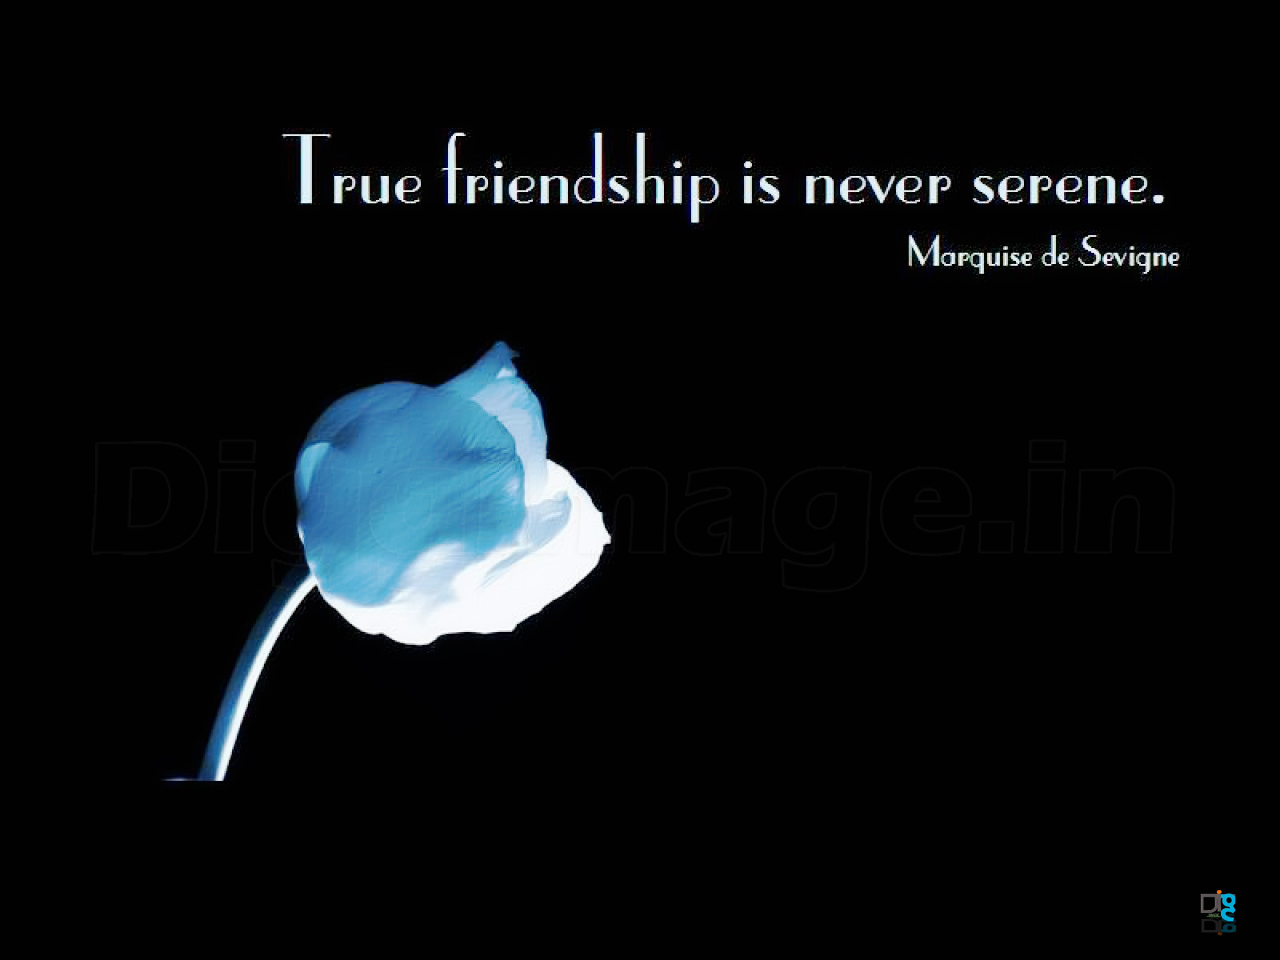 A Quote About Friendship 35 Friendship Wallpapers And Friendship Quotes